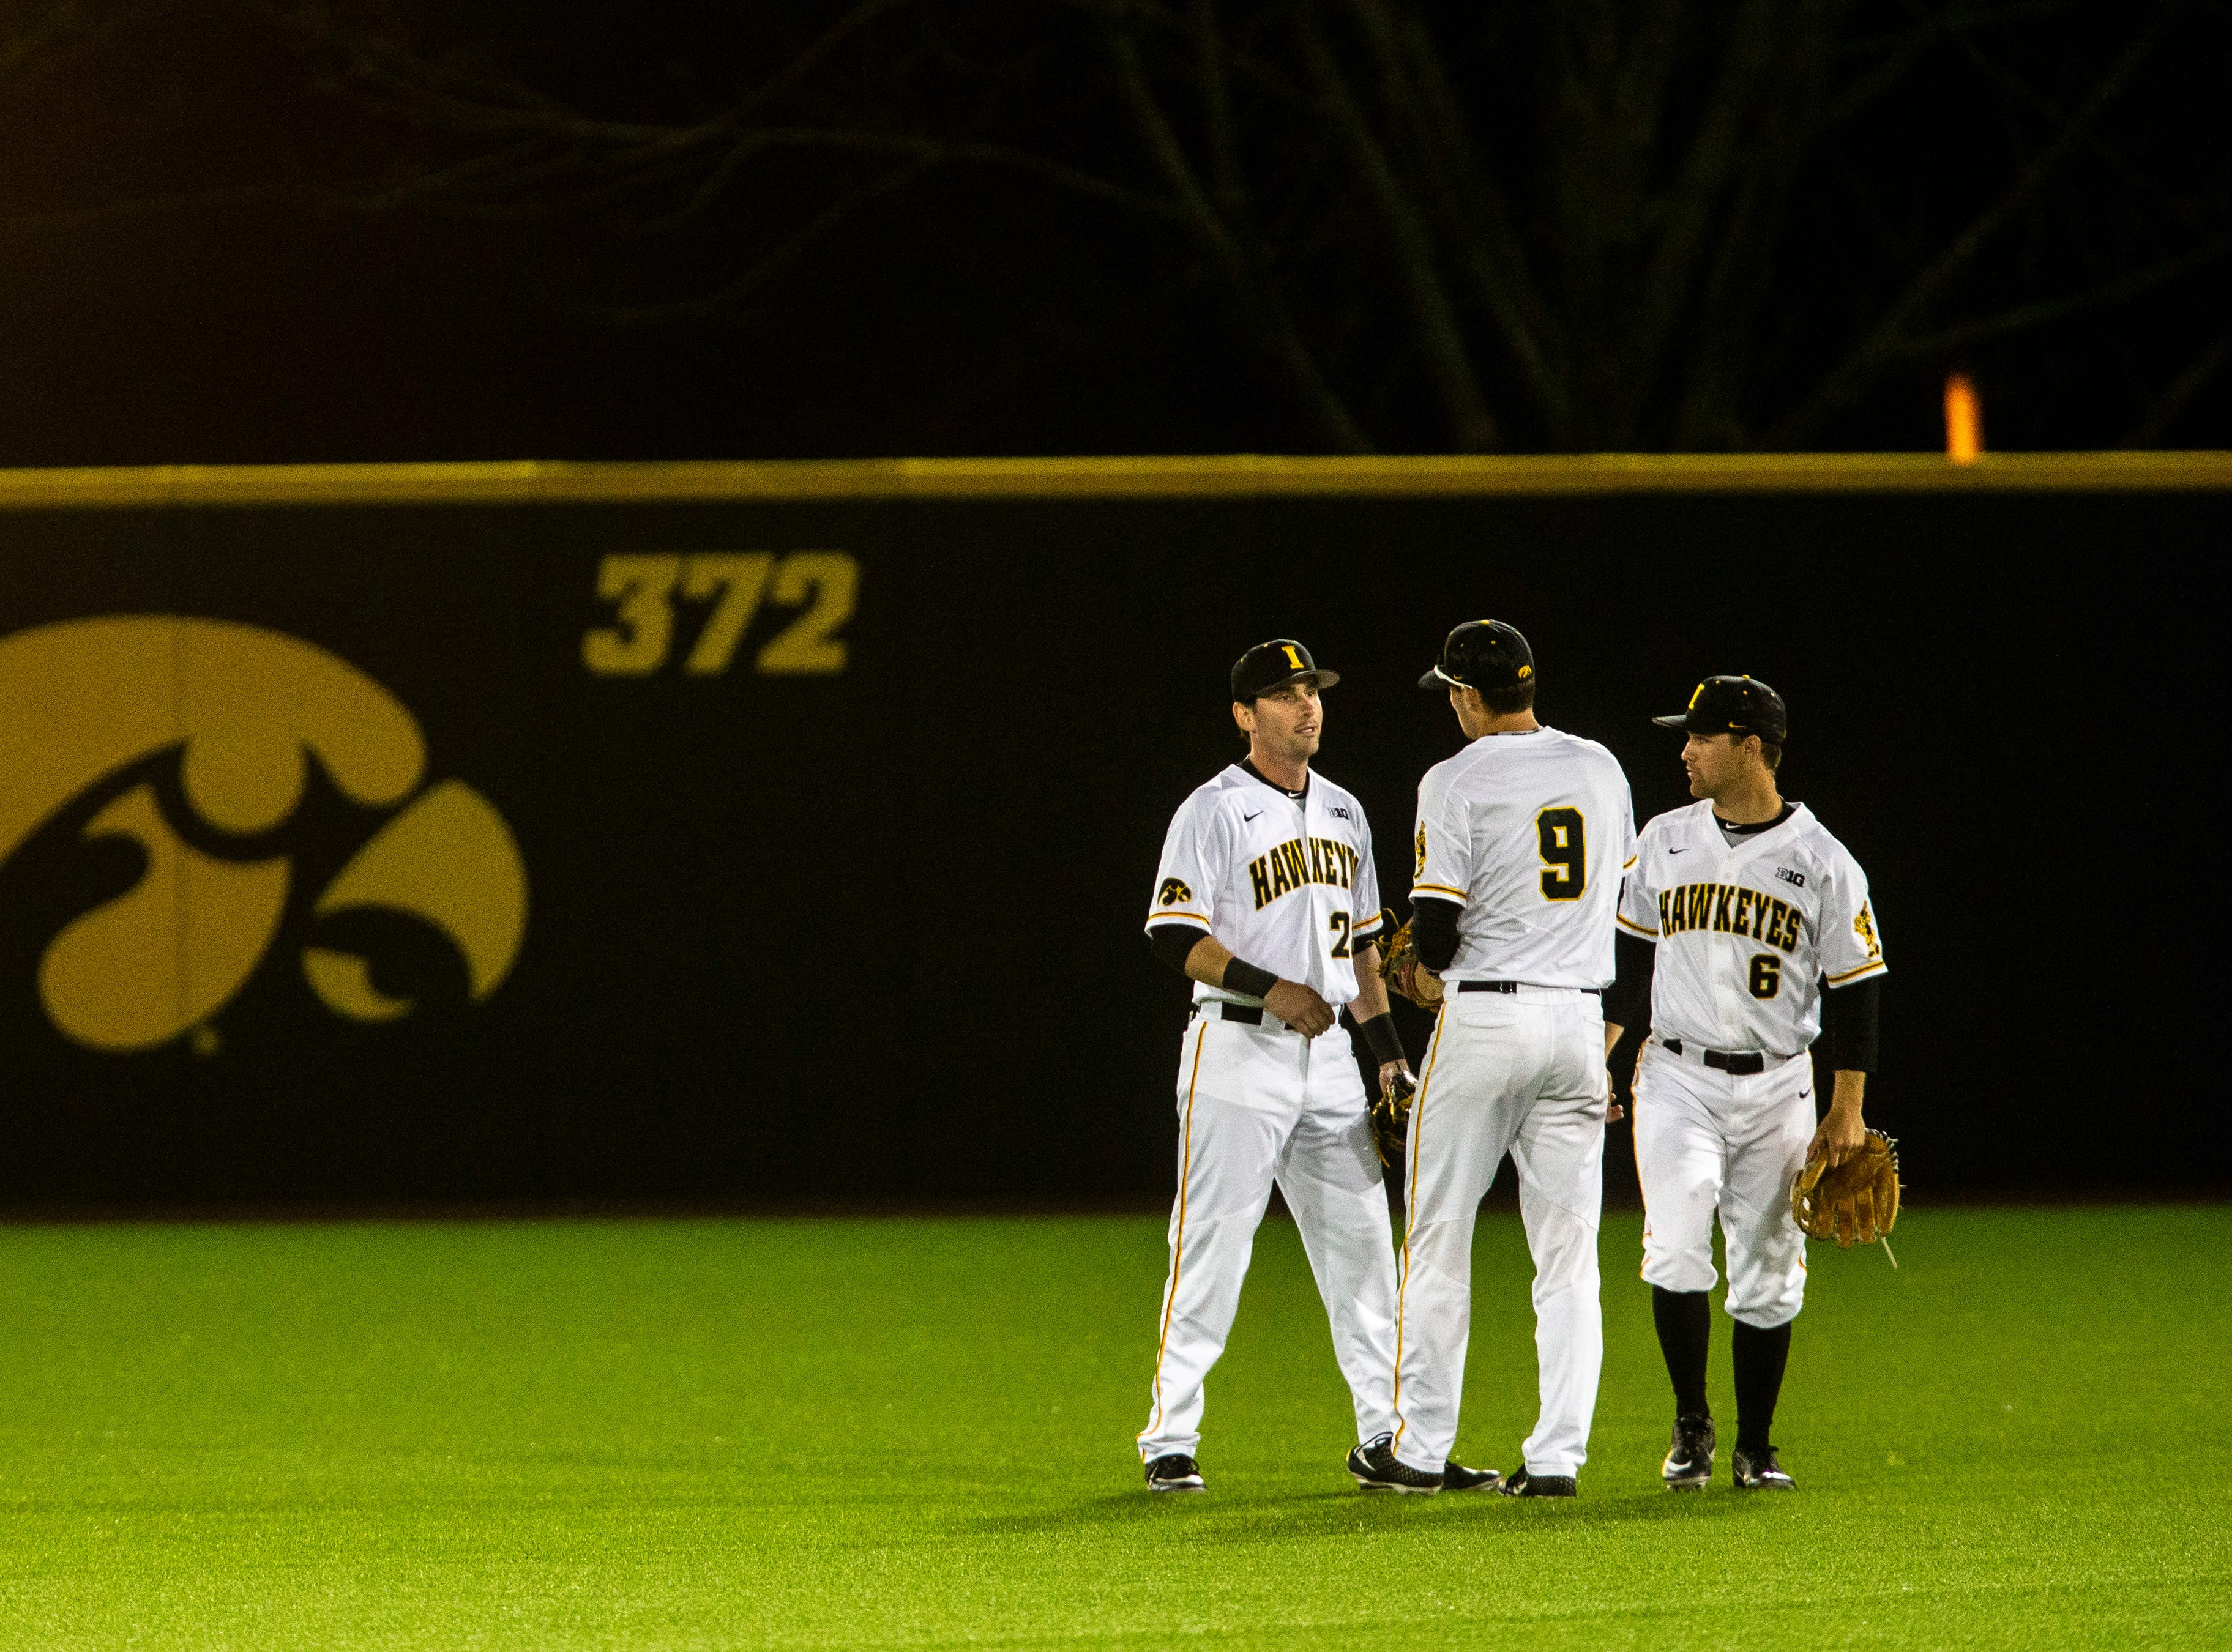 Iowa's Chris Whelan (28) meets with teammates Ben Norman (9) and Justin Jenkins (6) after catching an out in left field for the win after NCAA non conference baseball game, Friday, May 3, 2019, at Duane Banks Field in Iowa City, Iowa.